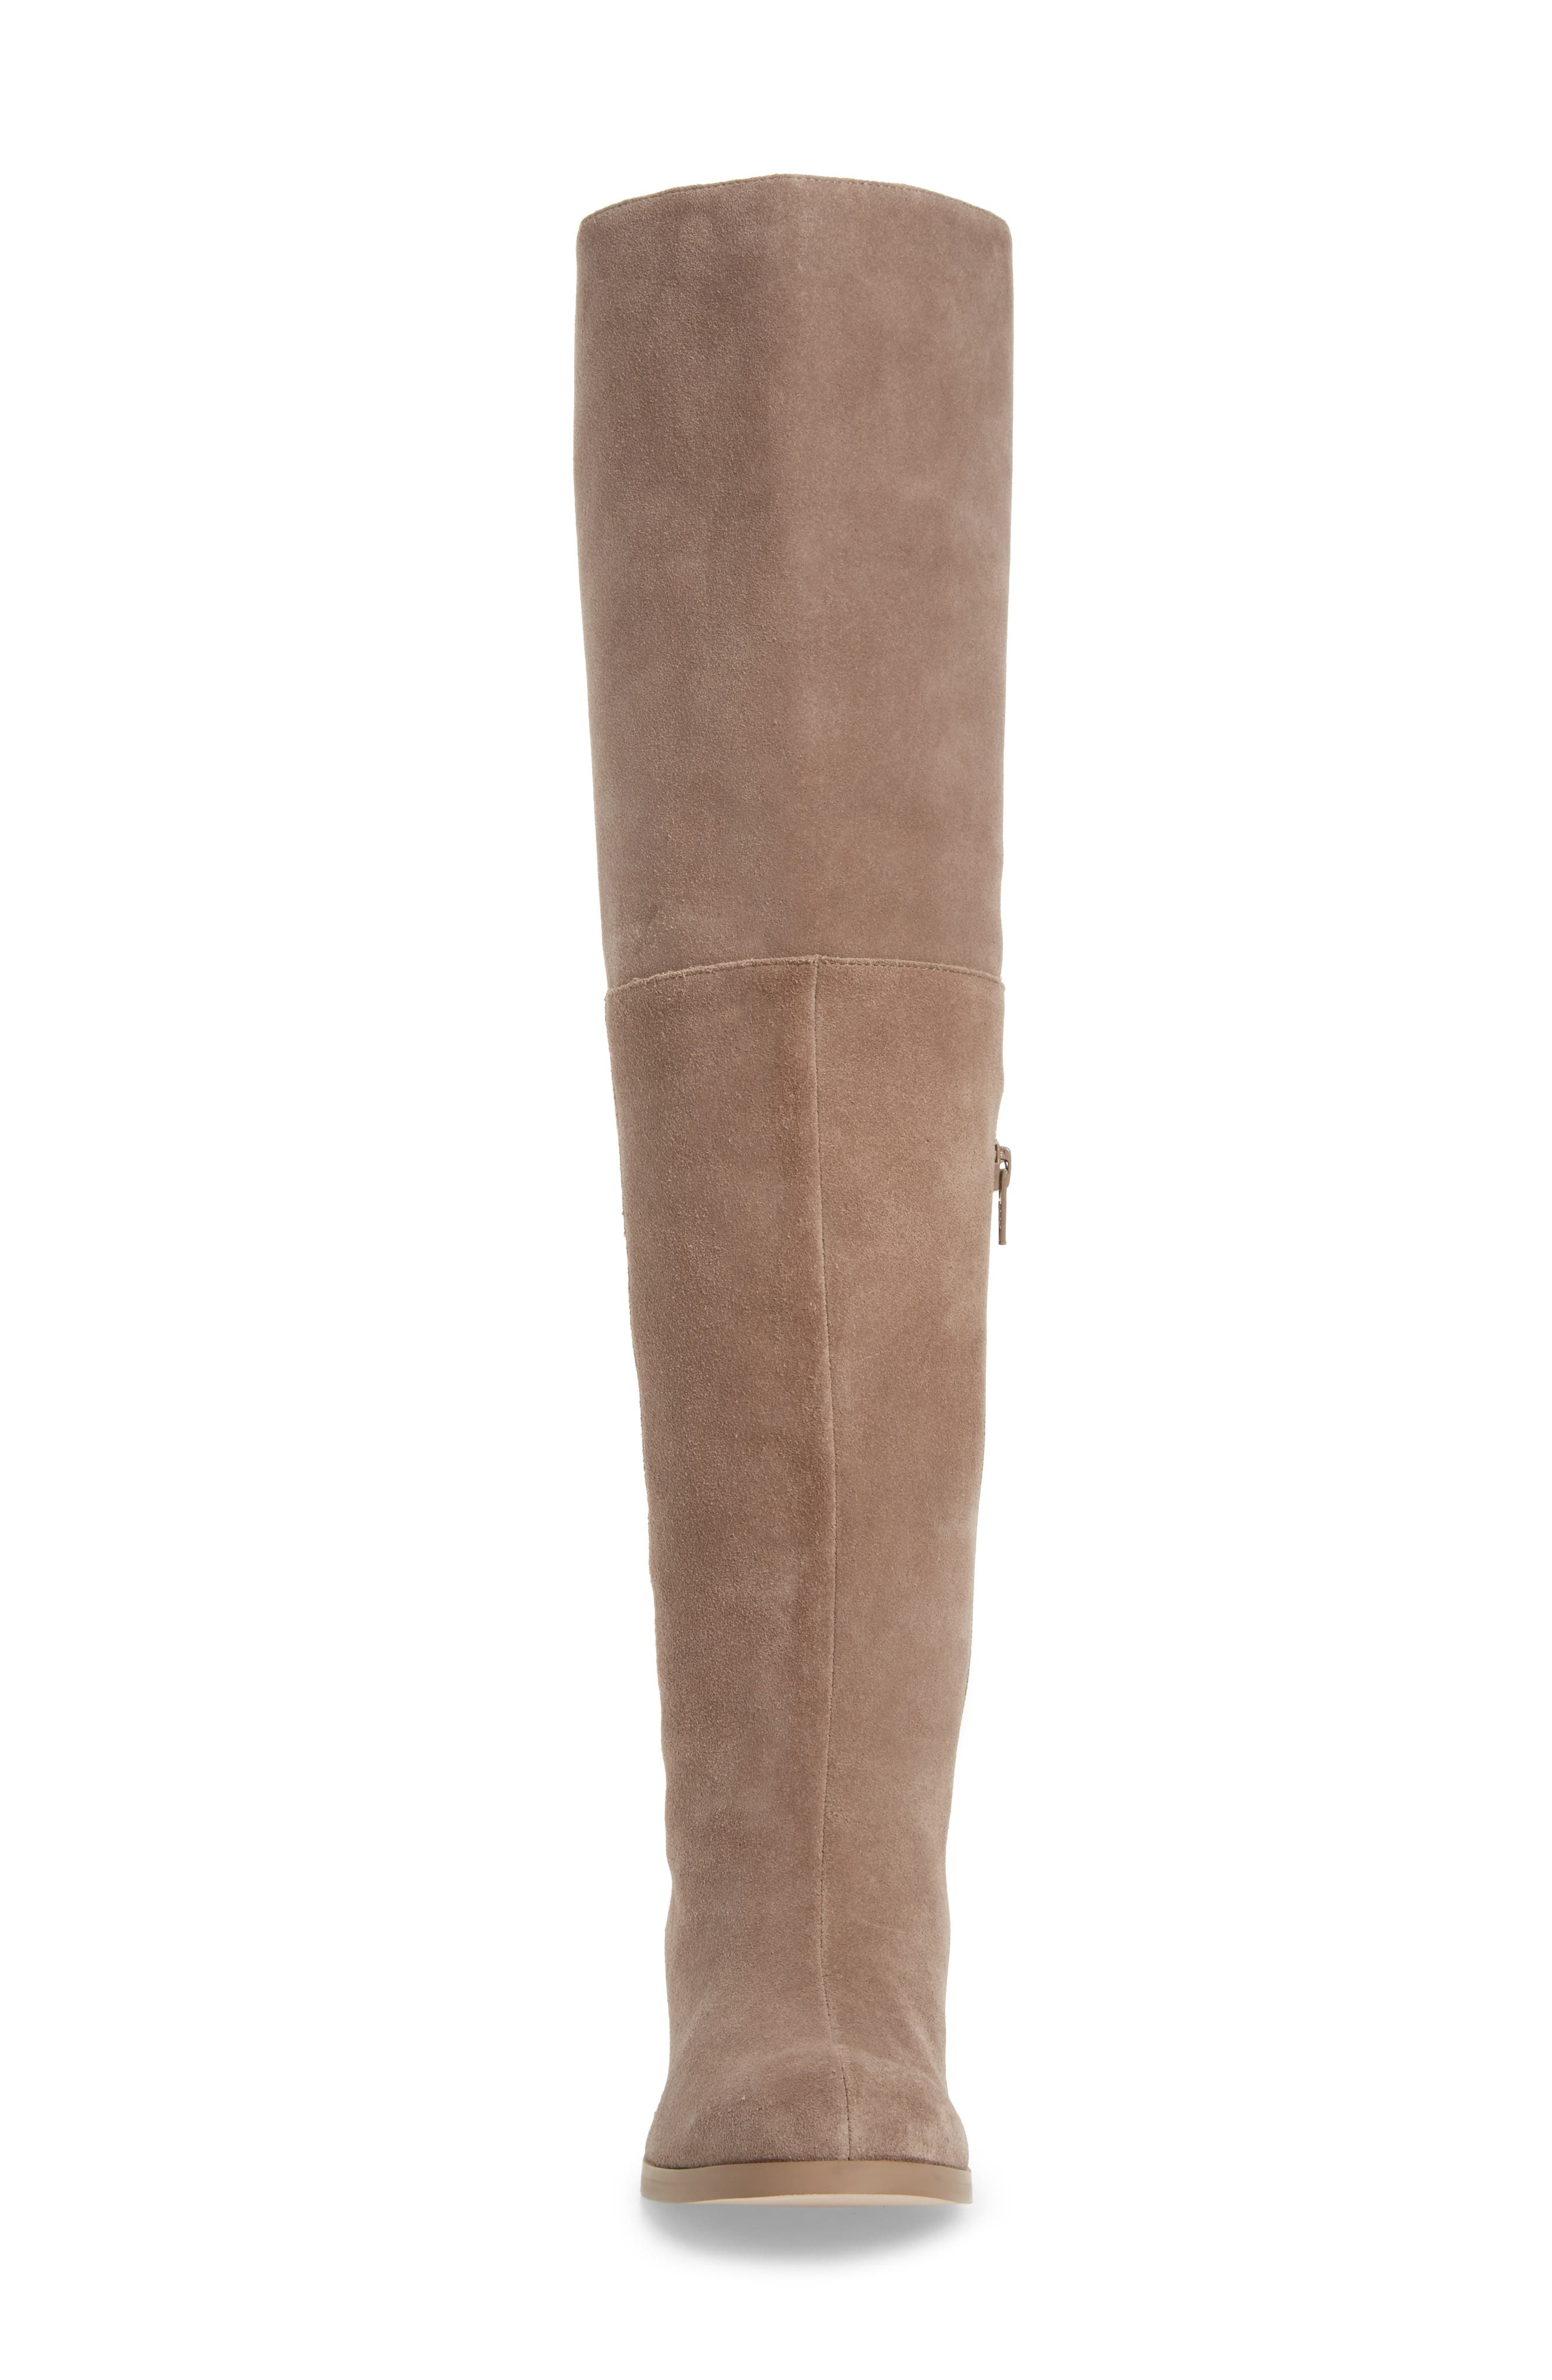 Sonoma Over the Knee Boot,                             Alternate thumbnail 4, color,                             030